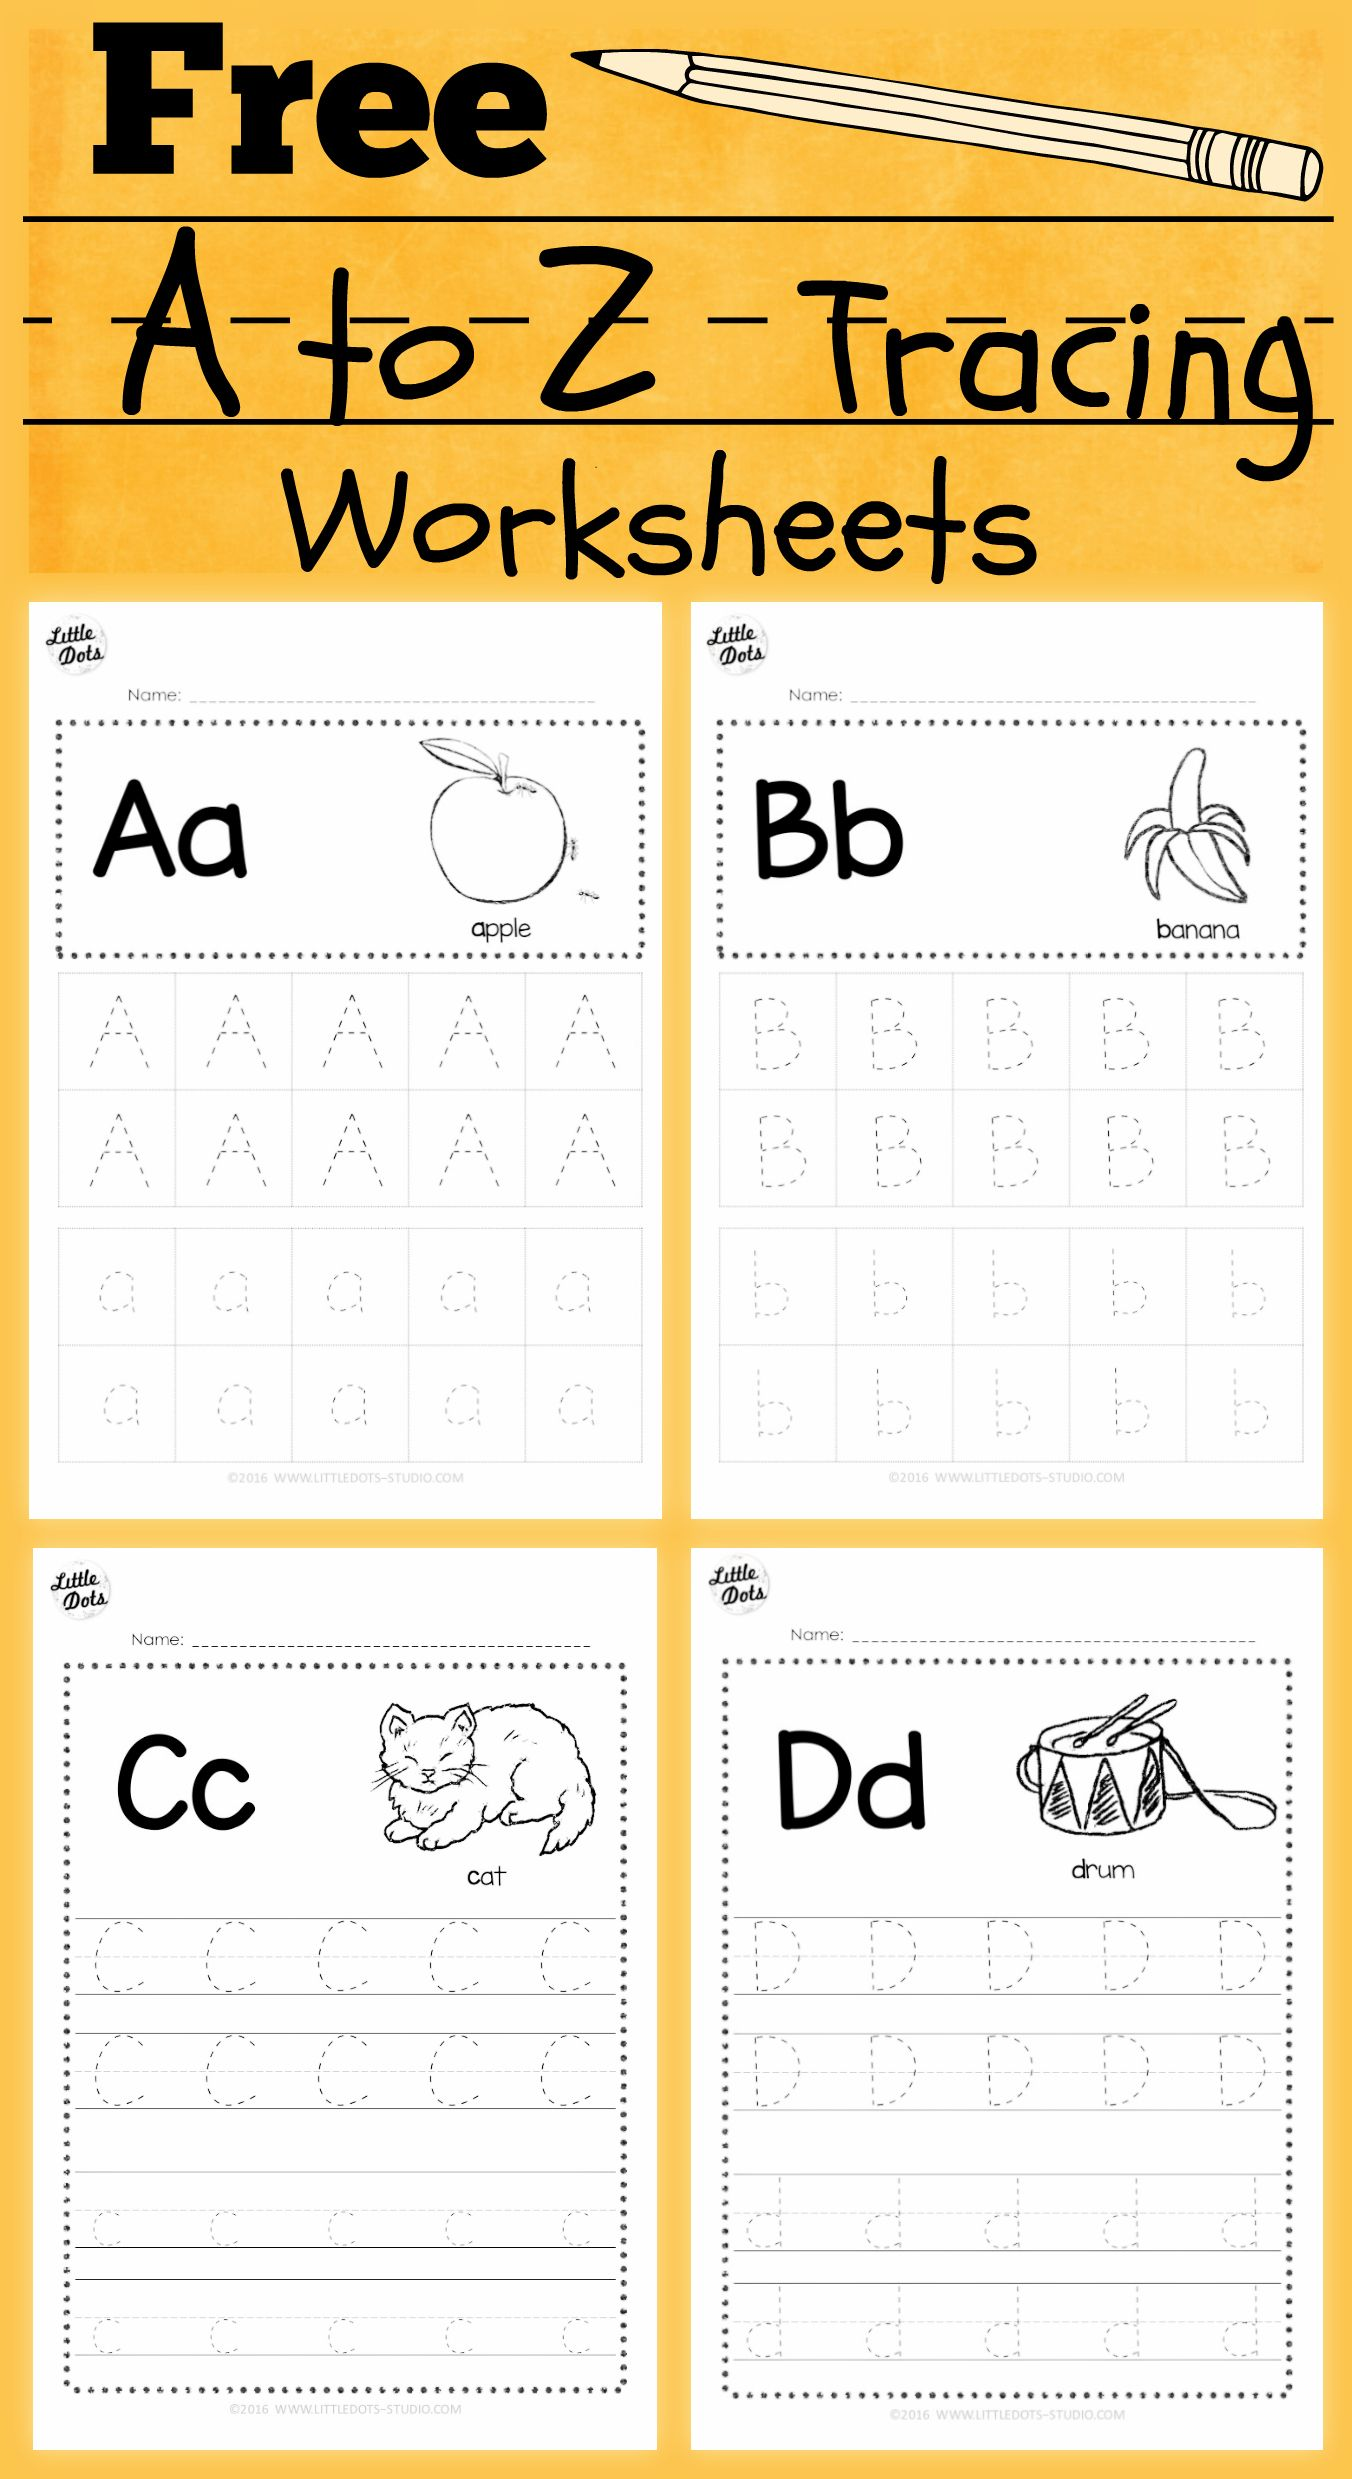 Download free alphabet tracing worksheets for letter a to z suitable ...